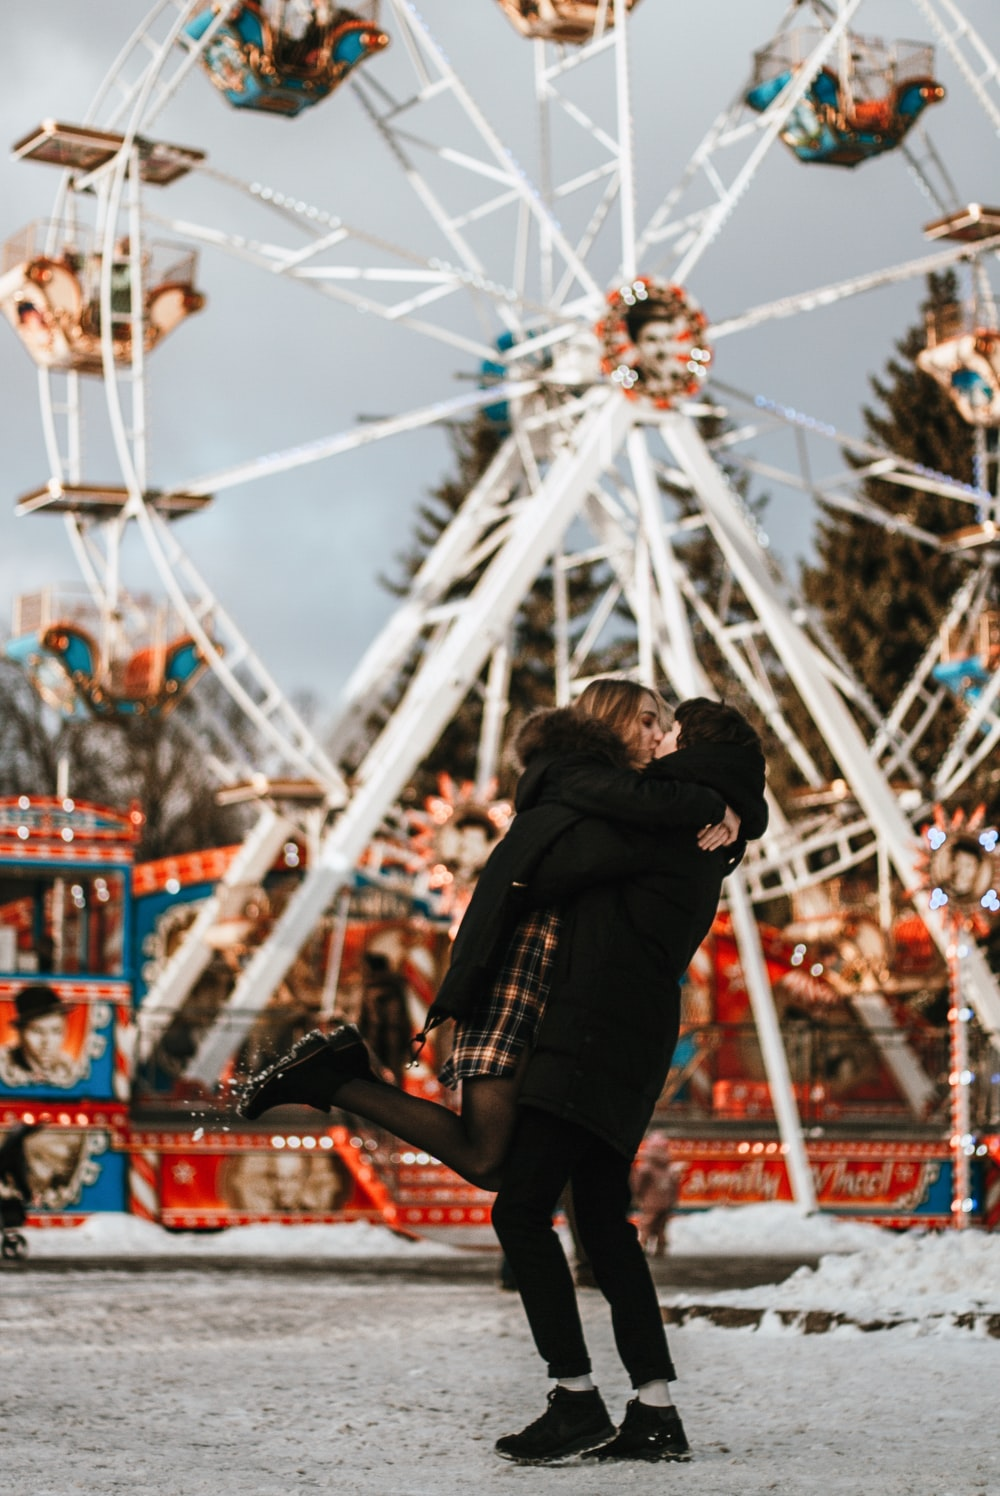 man and woman kissing near ferris wheel during daytime